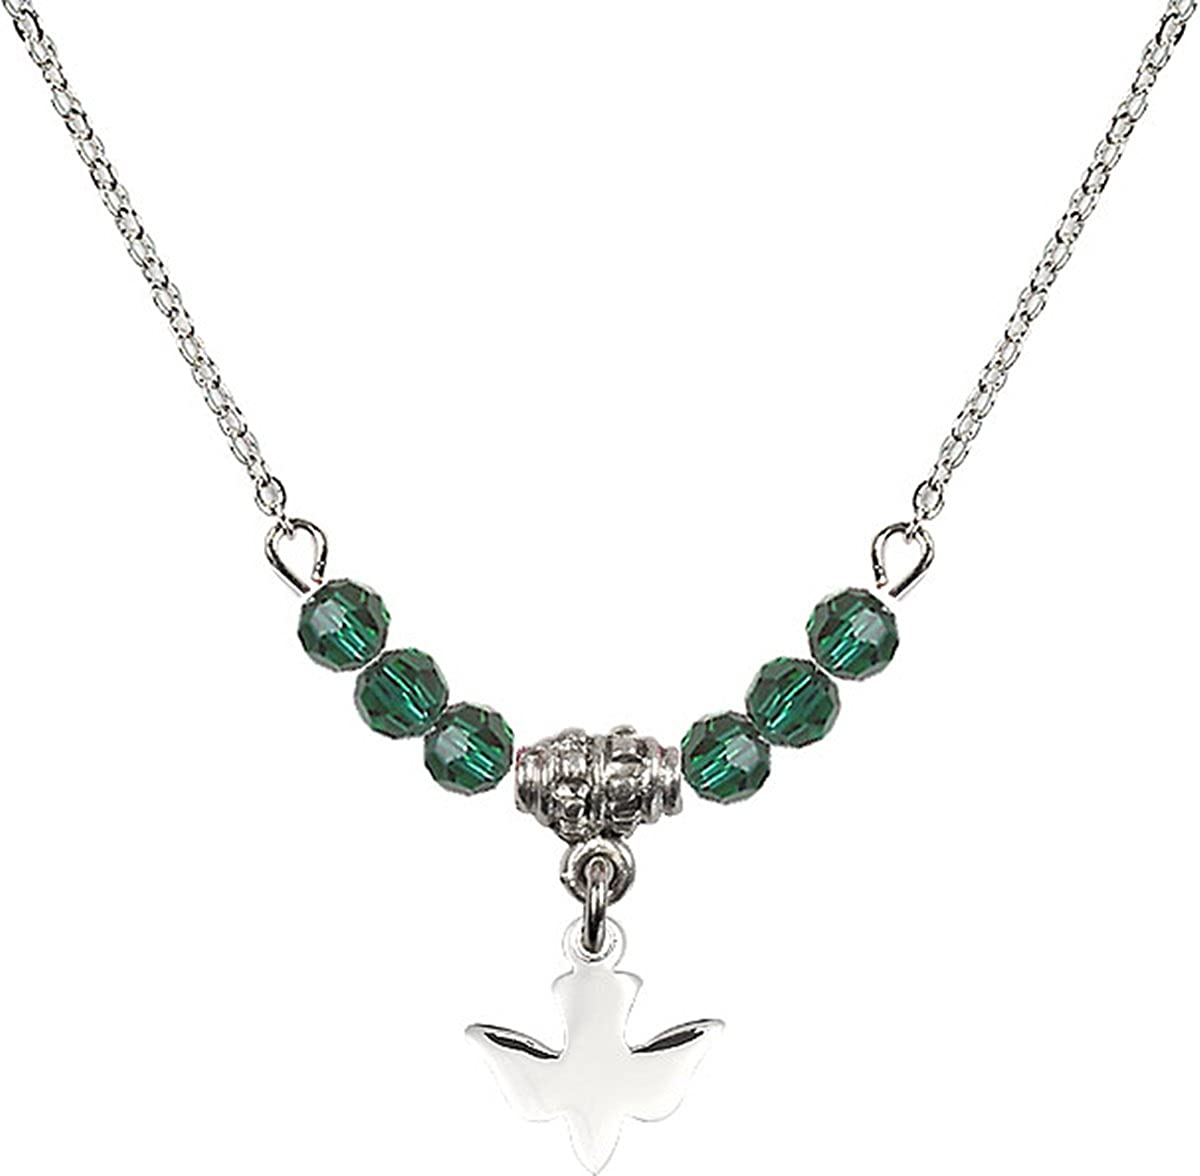 Birth Month Colored Bead Necklace with Holy Spirit Dove Charm 18 Inch